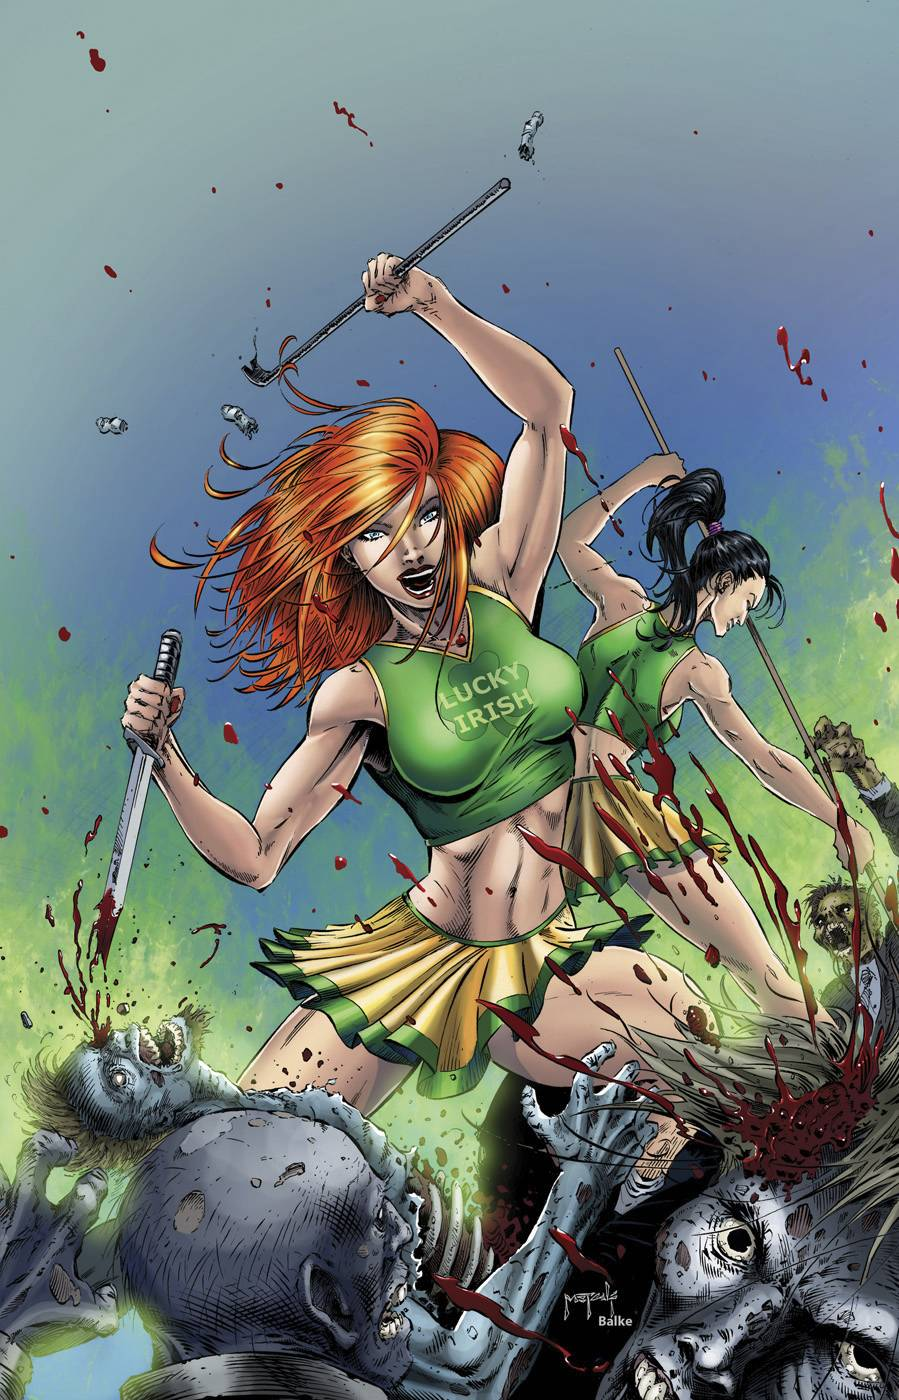 Zombies vs Cheerleaders 2015 St. Pattys Day Edition in